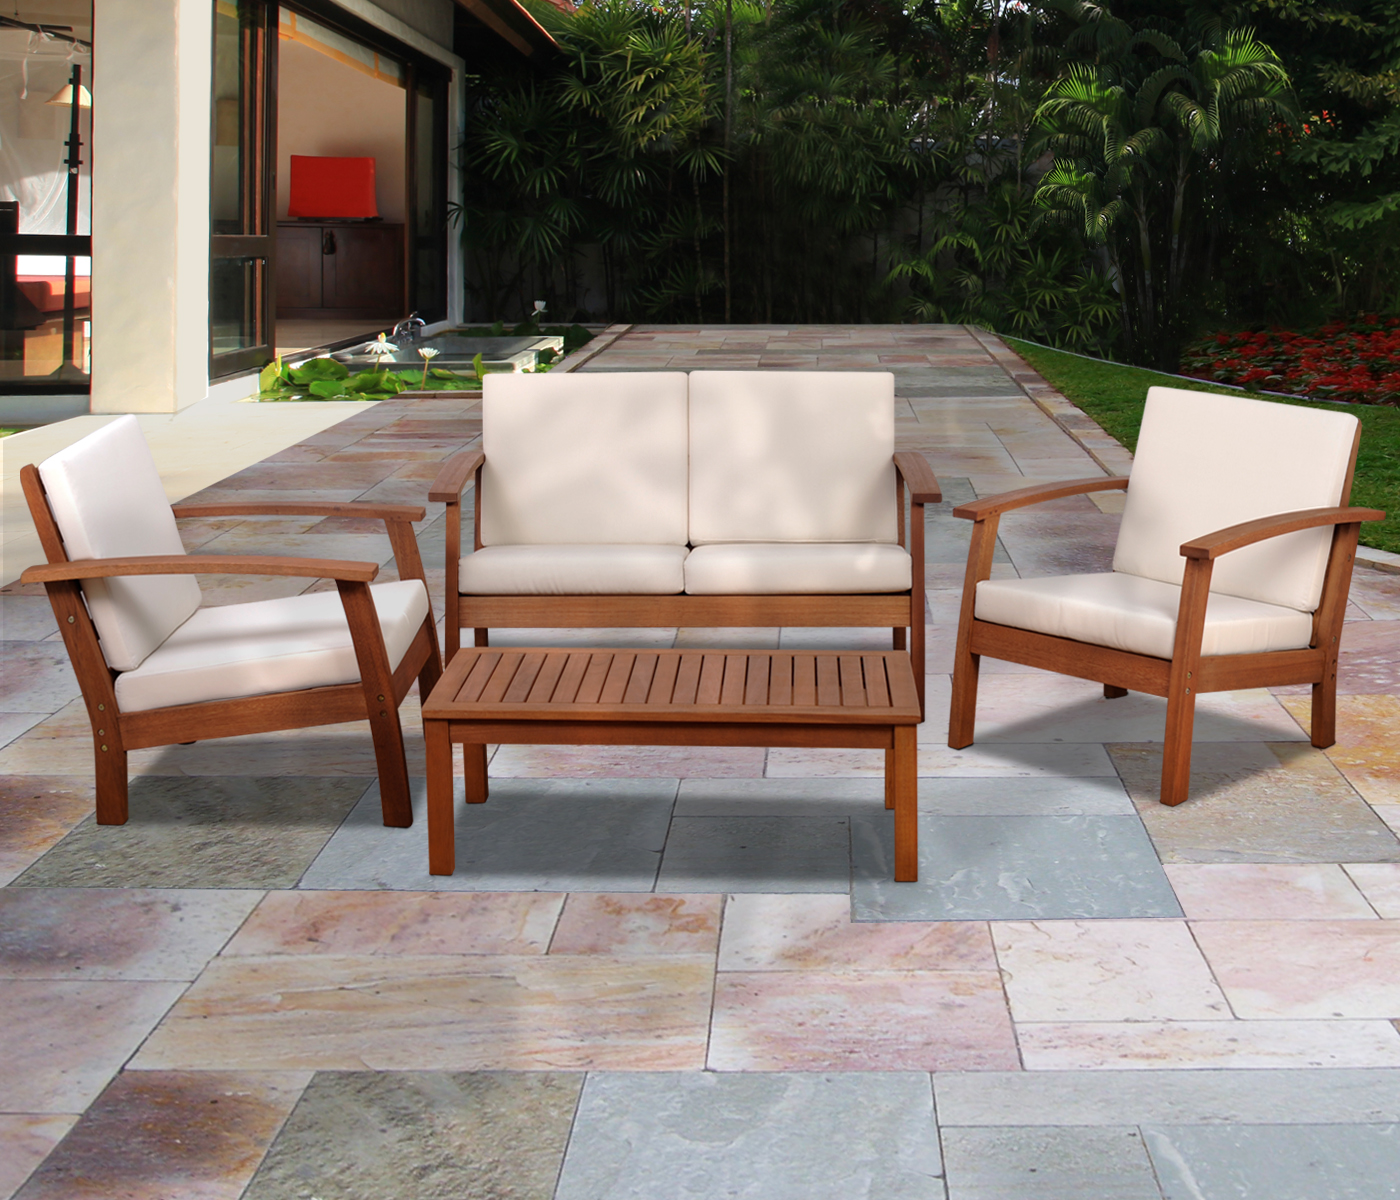 Amazonia Andorra 4 Piece Eucalyptus Deep Patio Seating Set